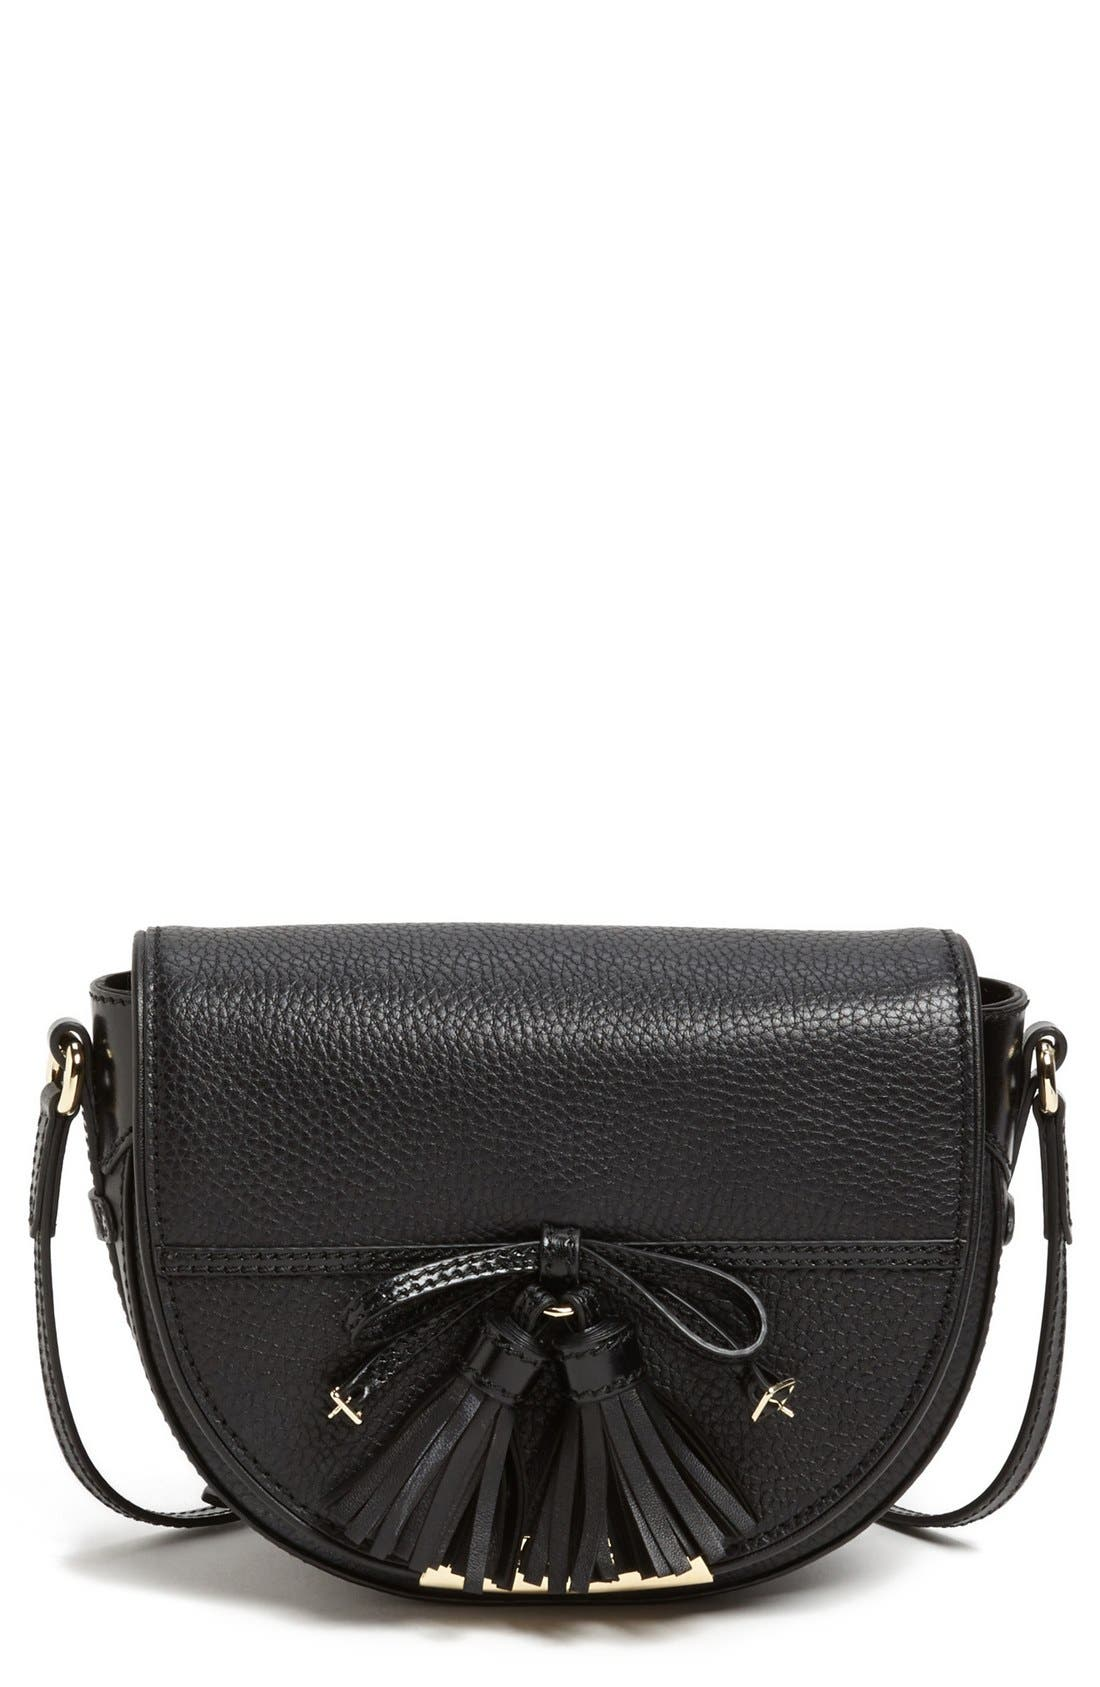 Alternate Image 1 Selected - Burberry 'Maydown' Leather Crossbody Bag